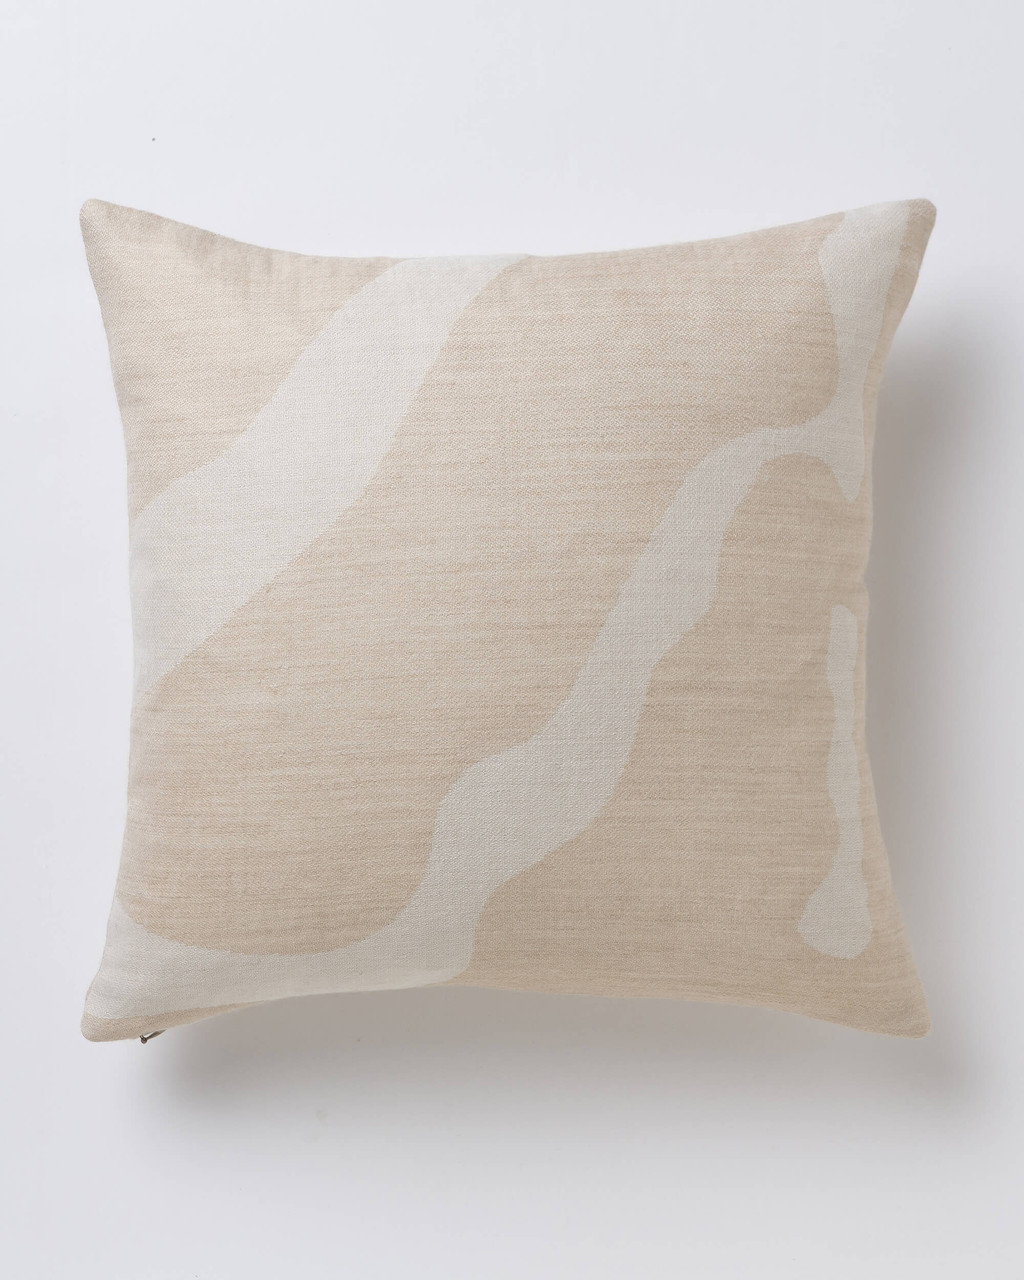 Alicia Adams Alpaca Zigby Pillow, alpaca pillow, alpaca throw pillow, alpaca decorative pillow, alpaca vs cashmere, beige and ivory alpaca throw pillow